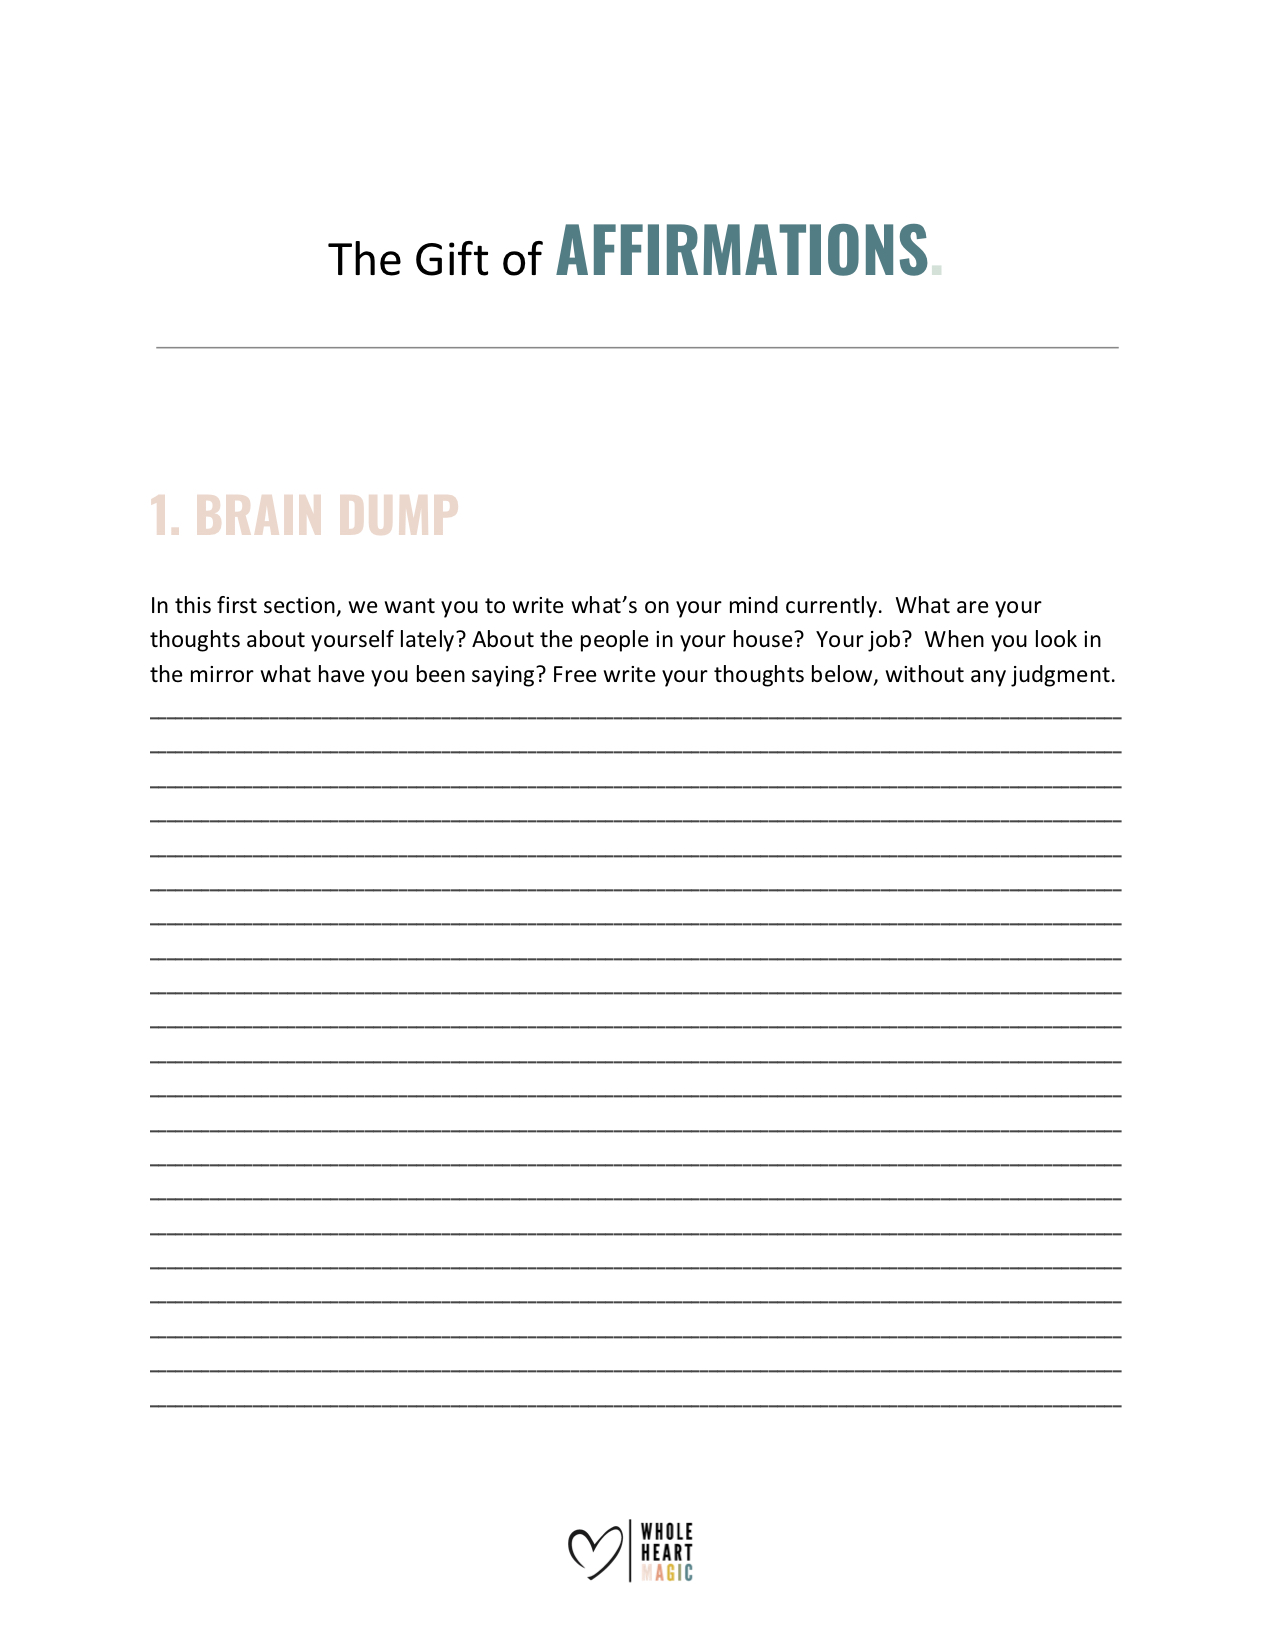 image regarding Brain Dump Worksheet titled Worksheets Full Center Magic